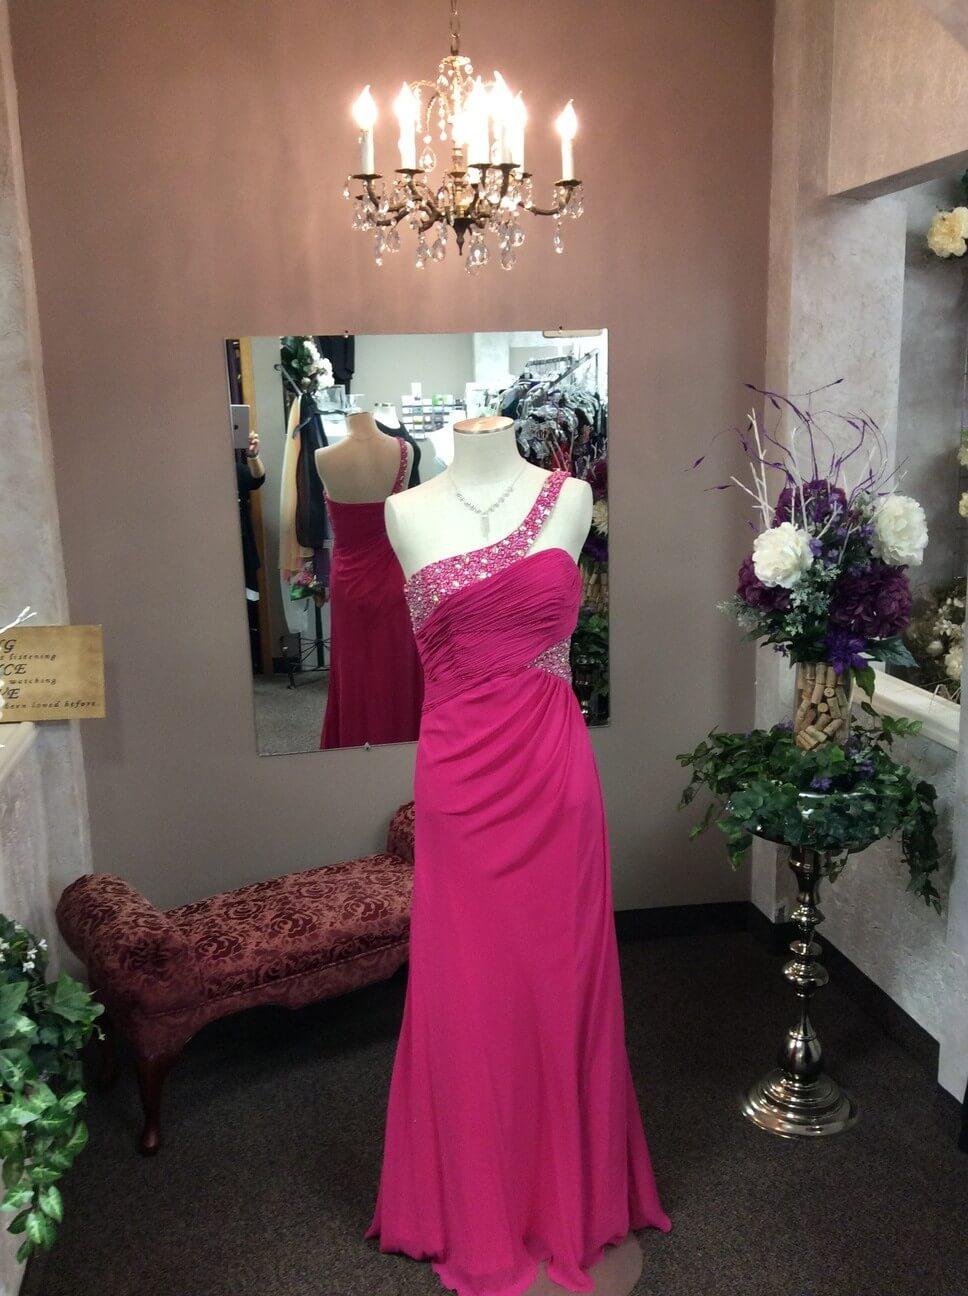 Prom dresses consignment mn eligent prom dresses for Wedding dress resale shop